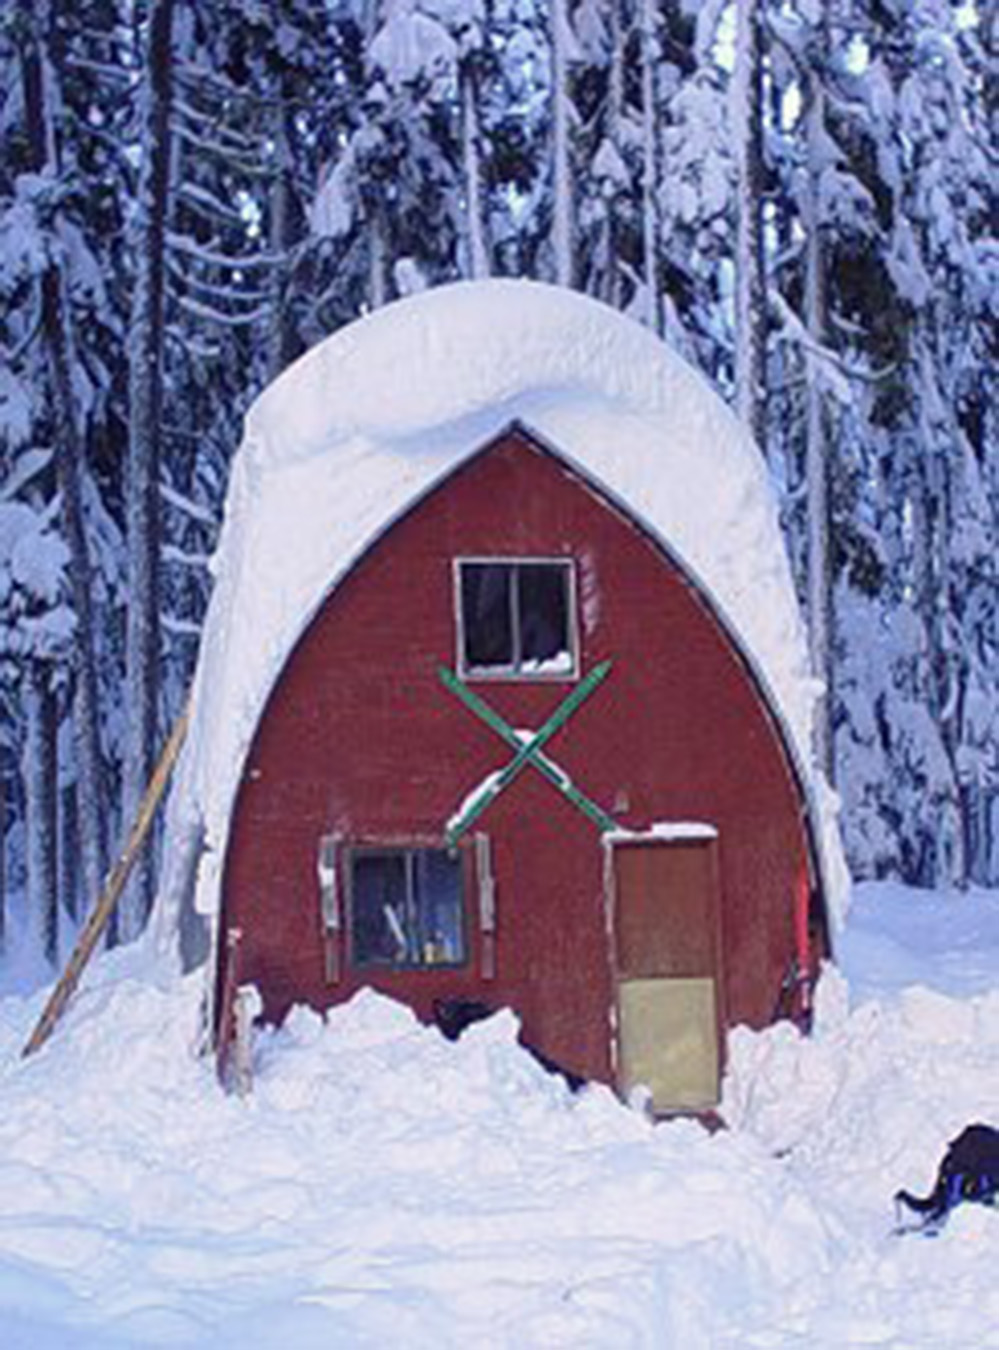 The front end wall of the gothic arch hut in the winter before maintenance was performed and the hut was repainted.